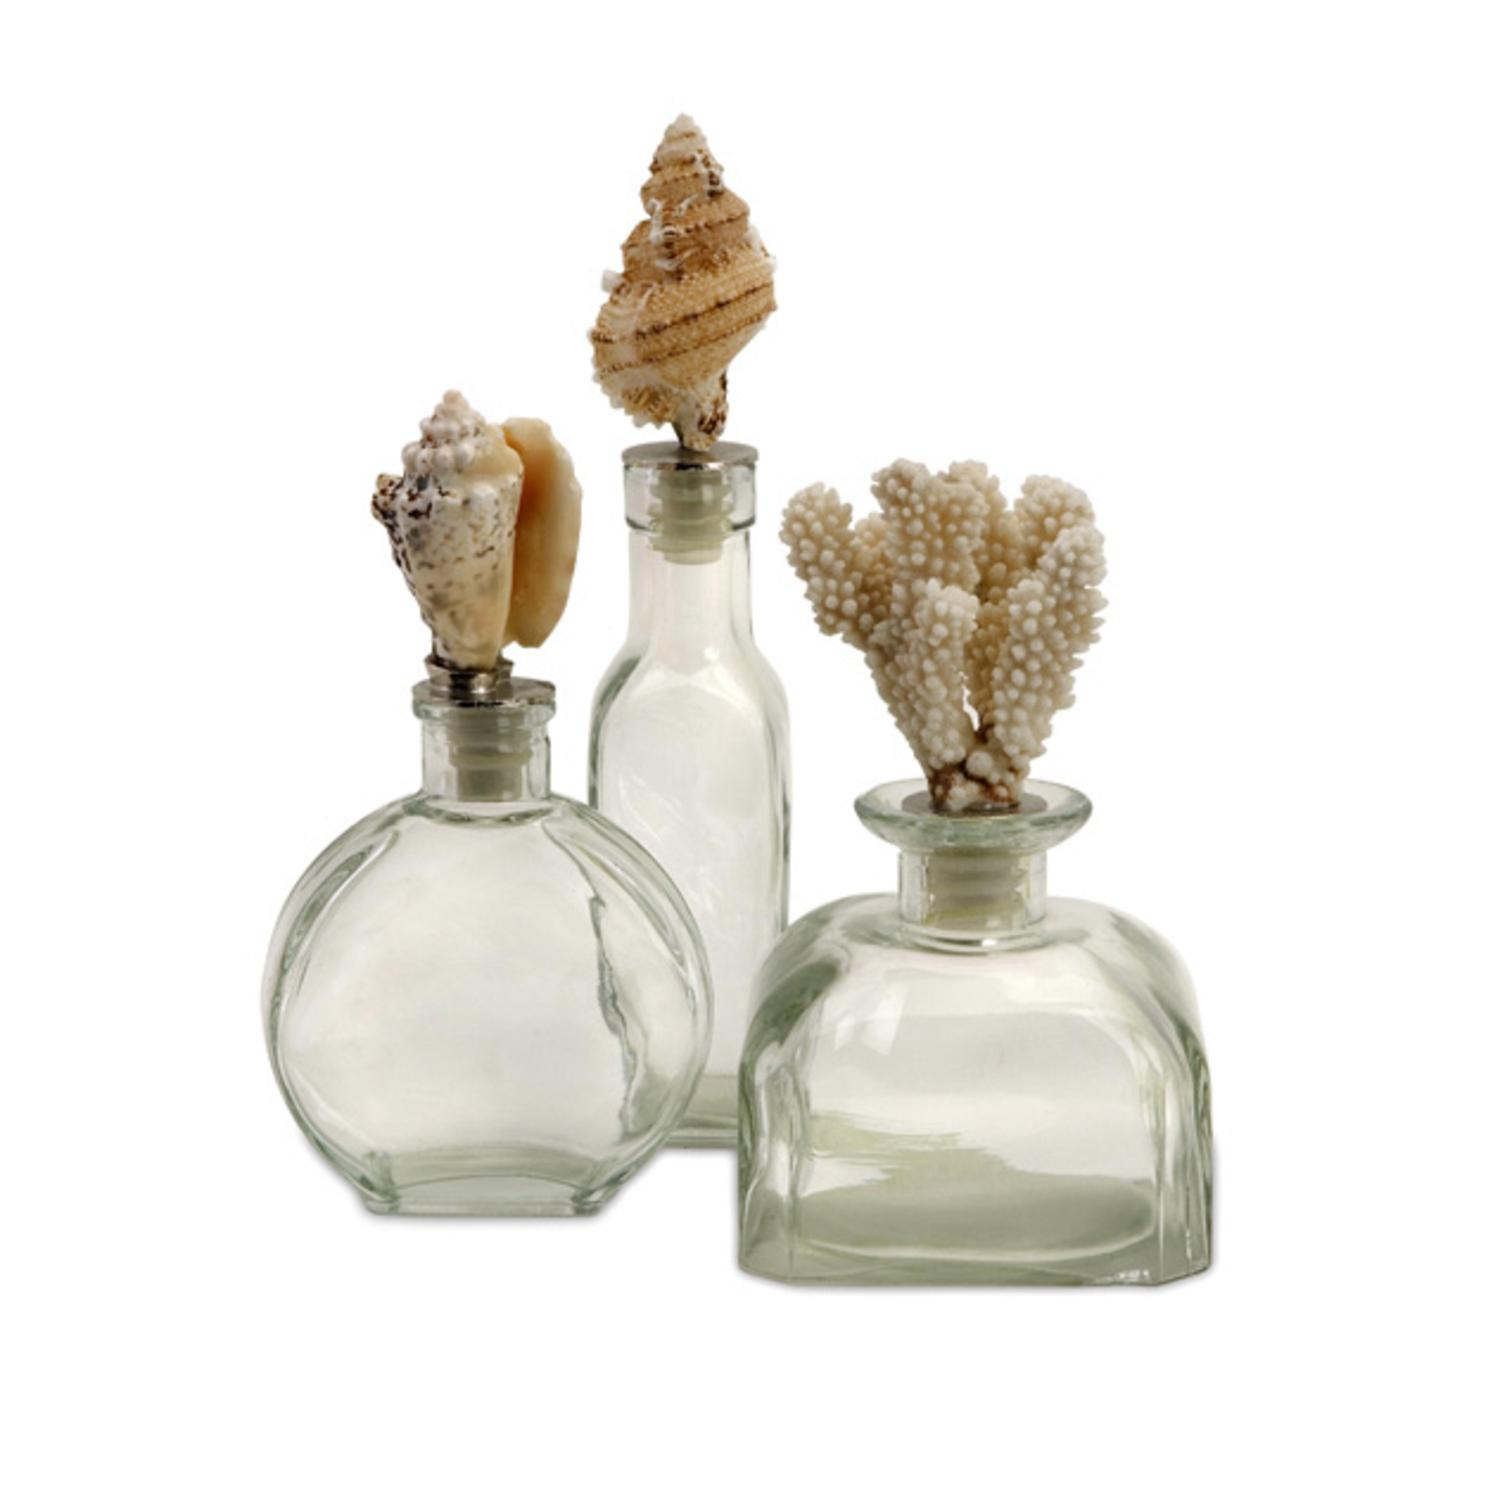 Decorative Clear Glass Bottles Prepossessing Set Of 3 Decorative Clear Glass Bottles With Nautical Sea Shell Design Decoration